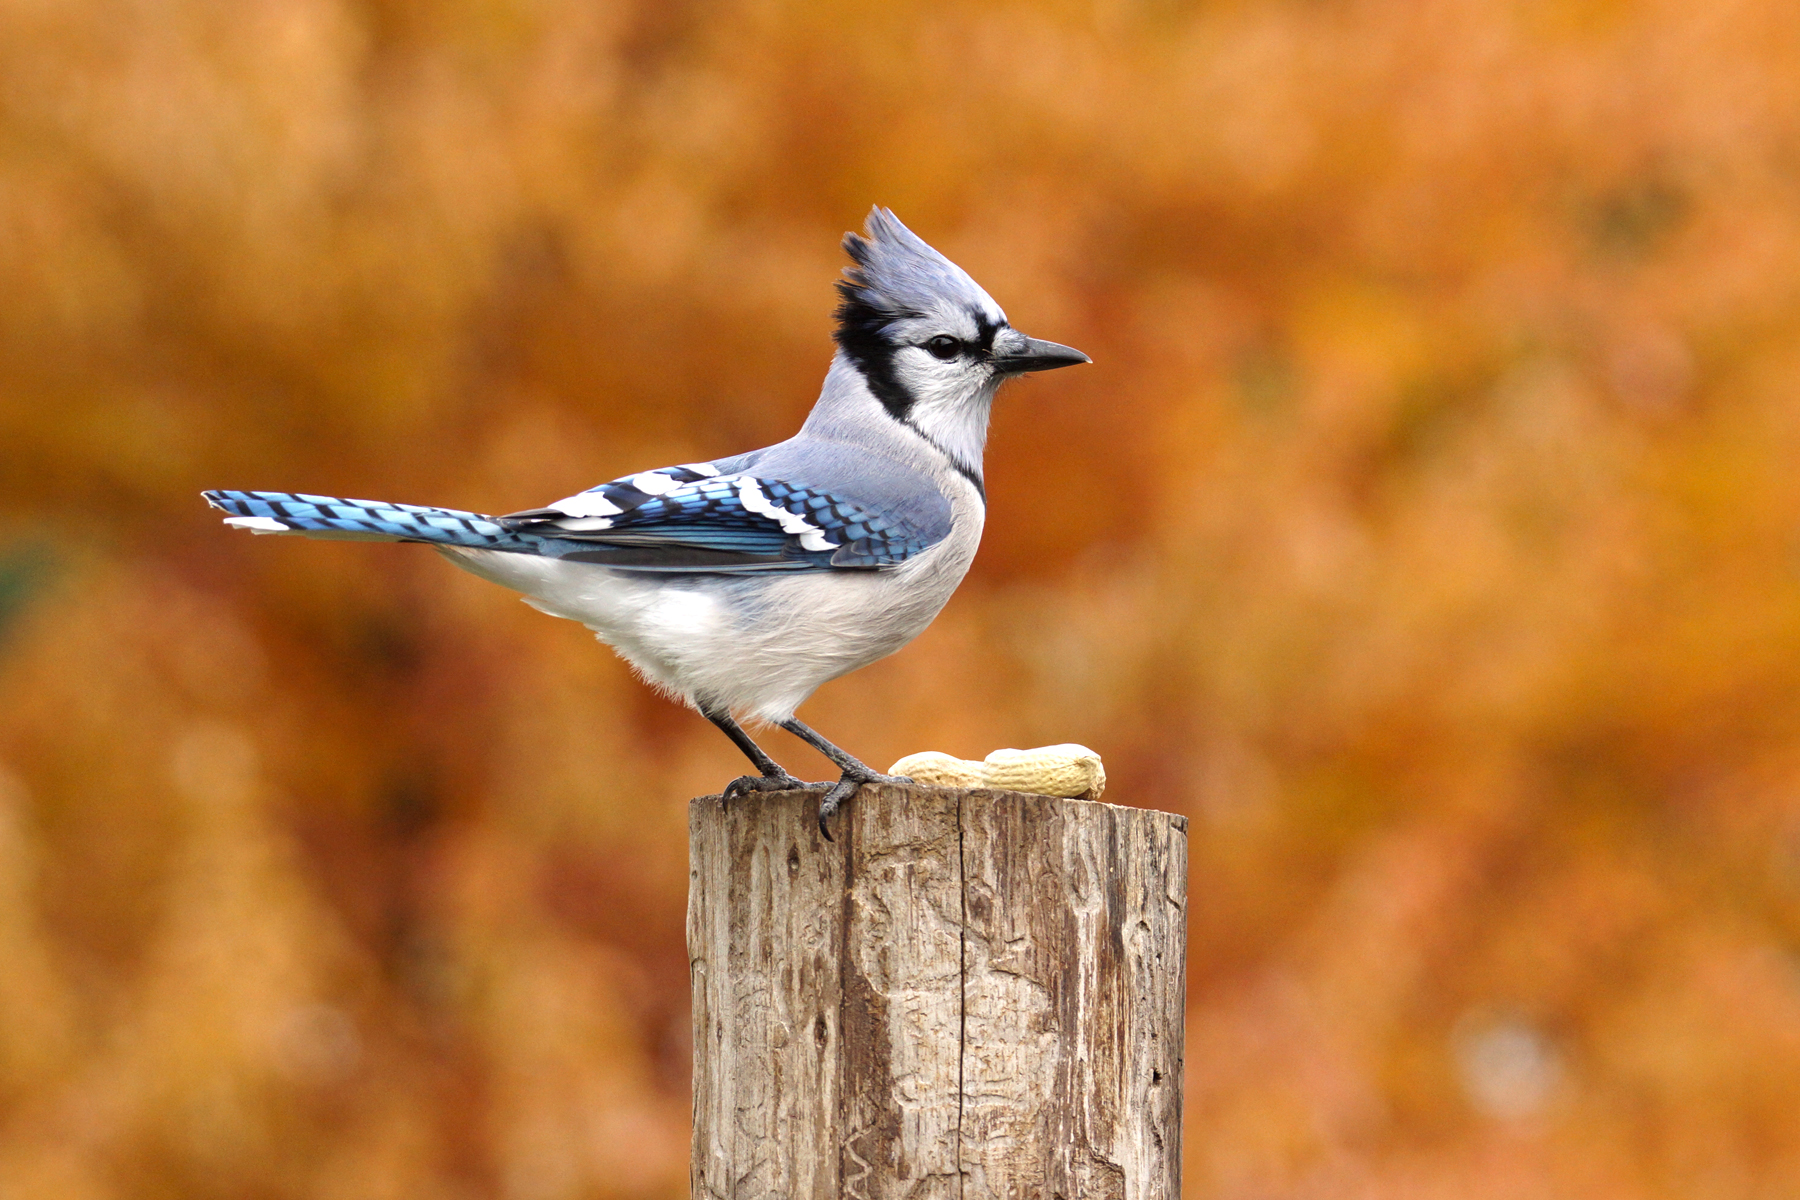 Species profile: Blue Jay – Nature's clown